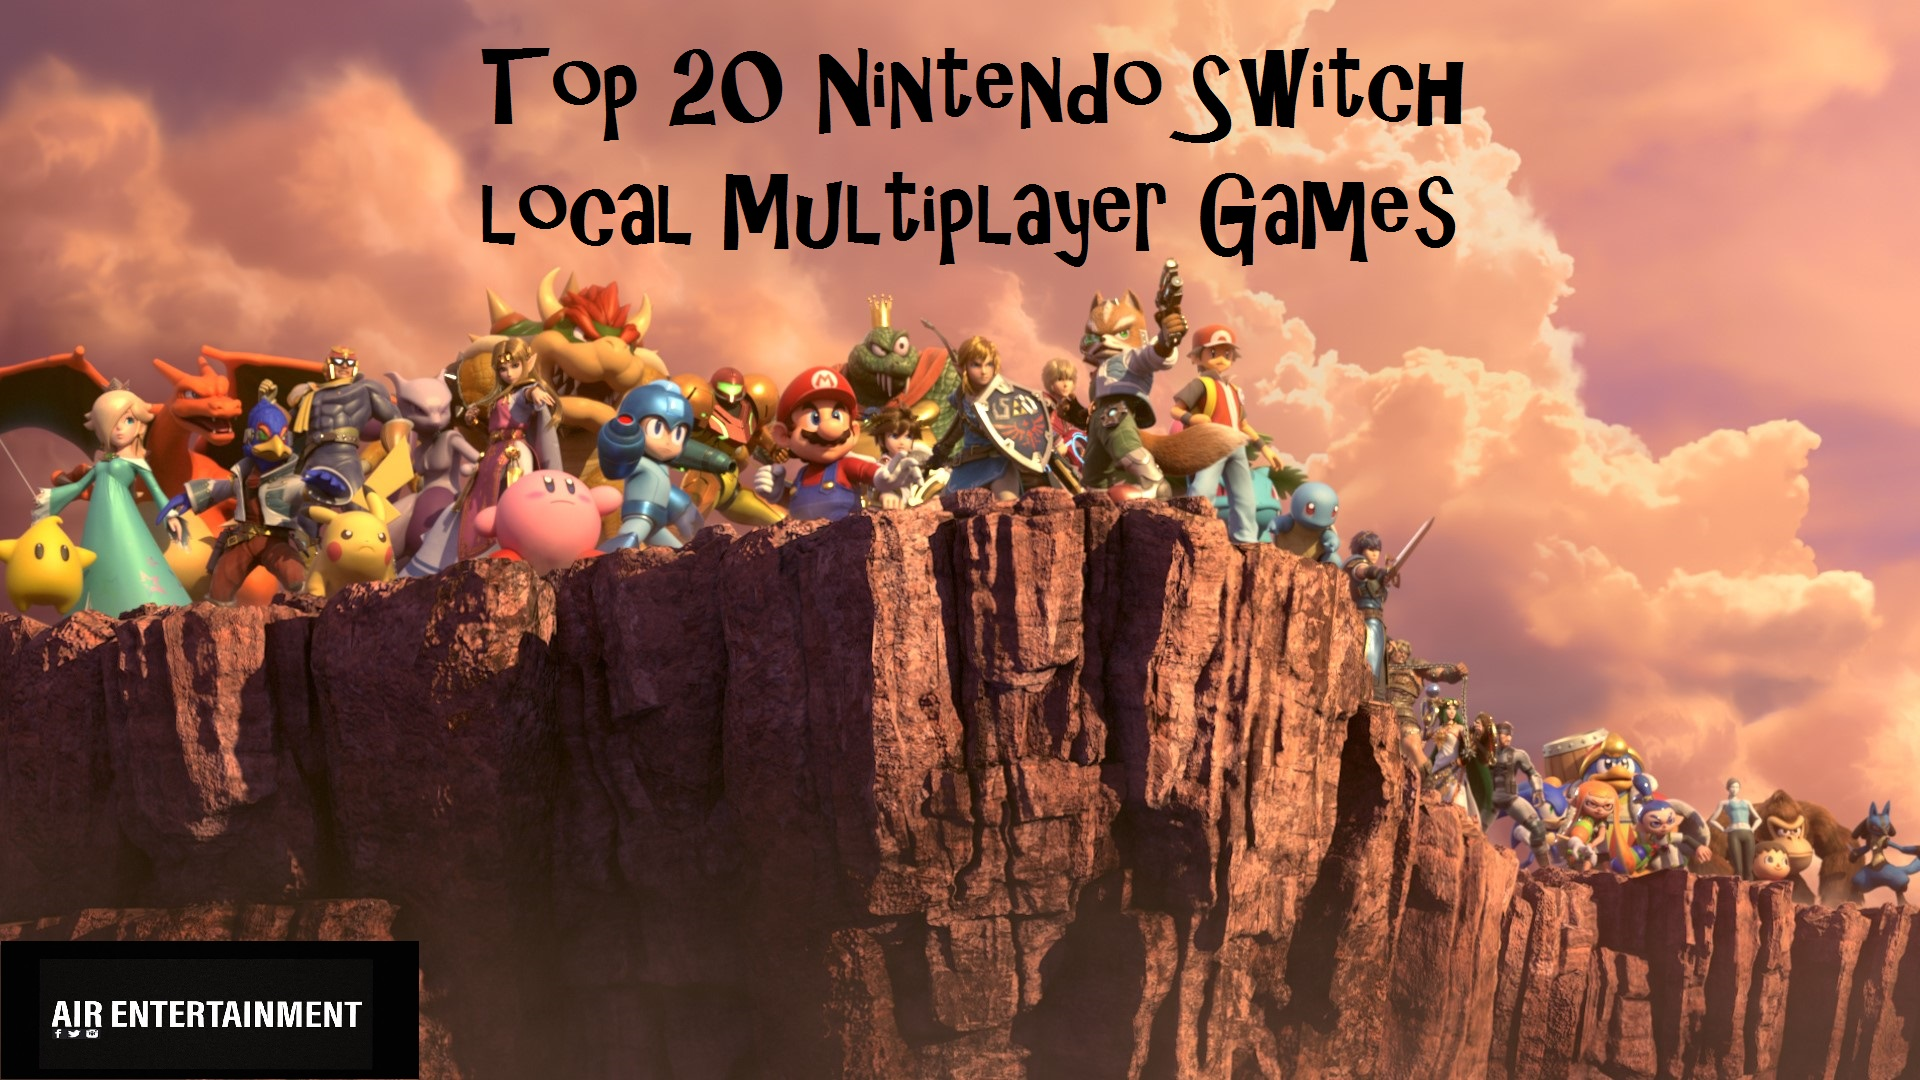 Top 20 Nintendo Switch Local Multiplayer Games